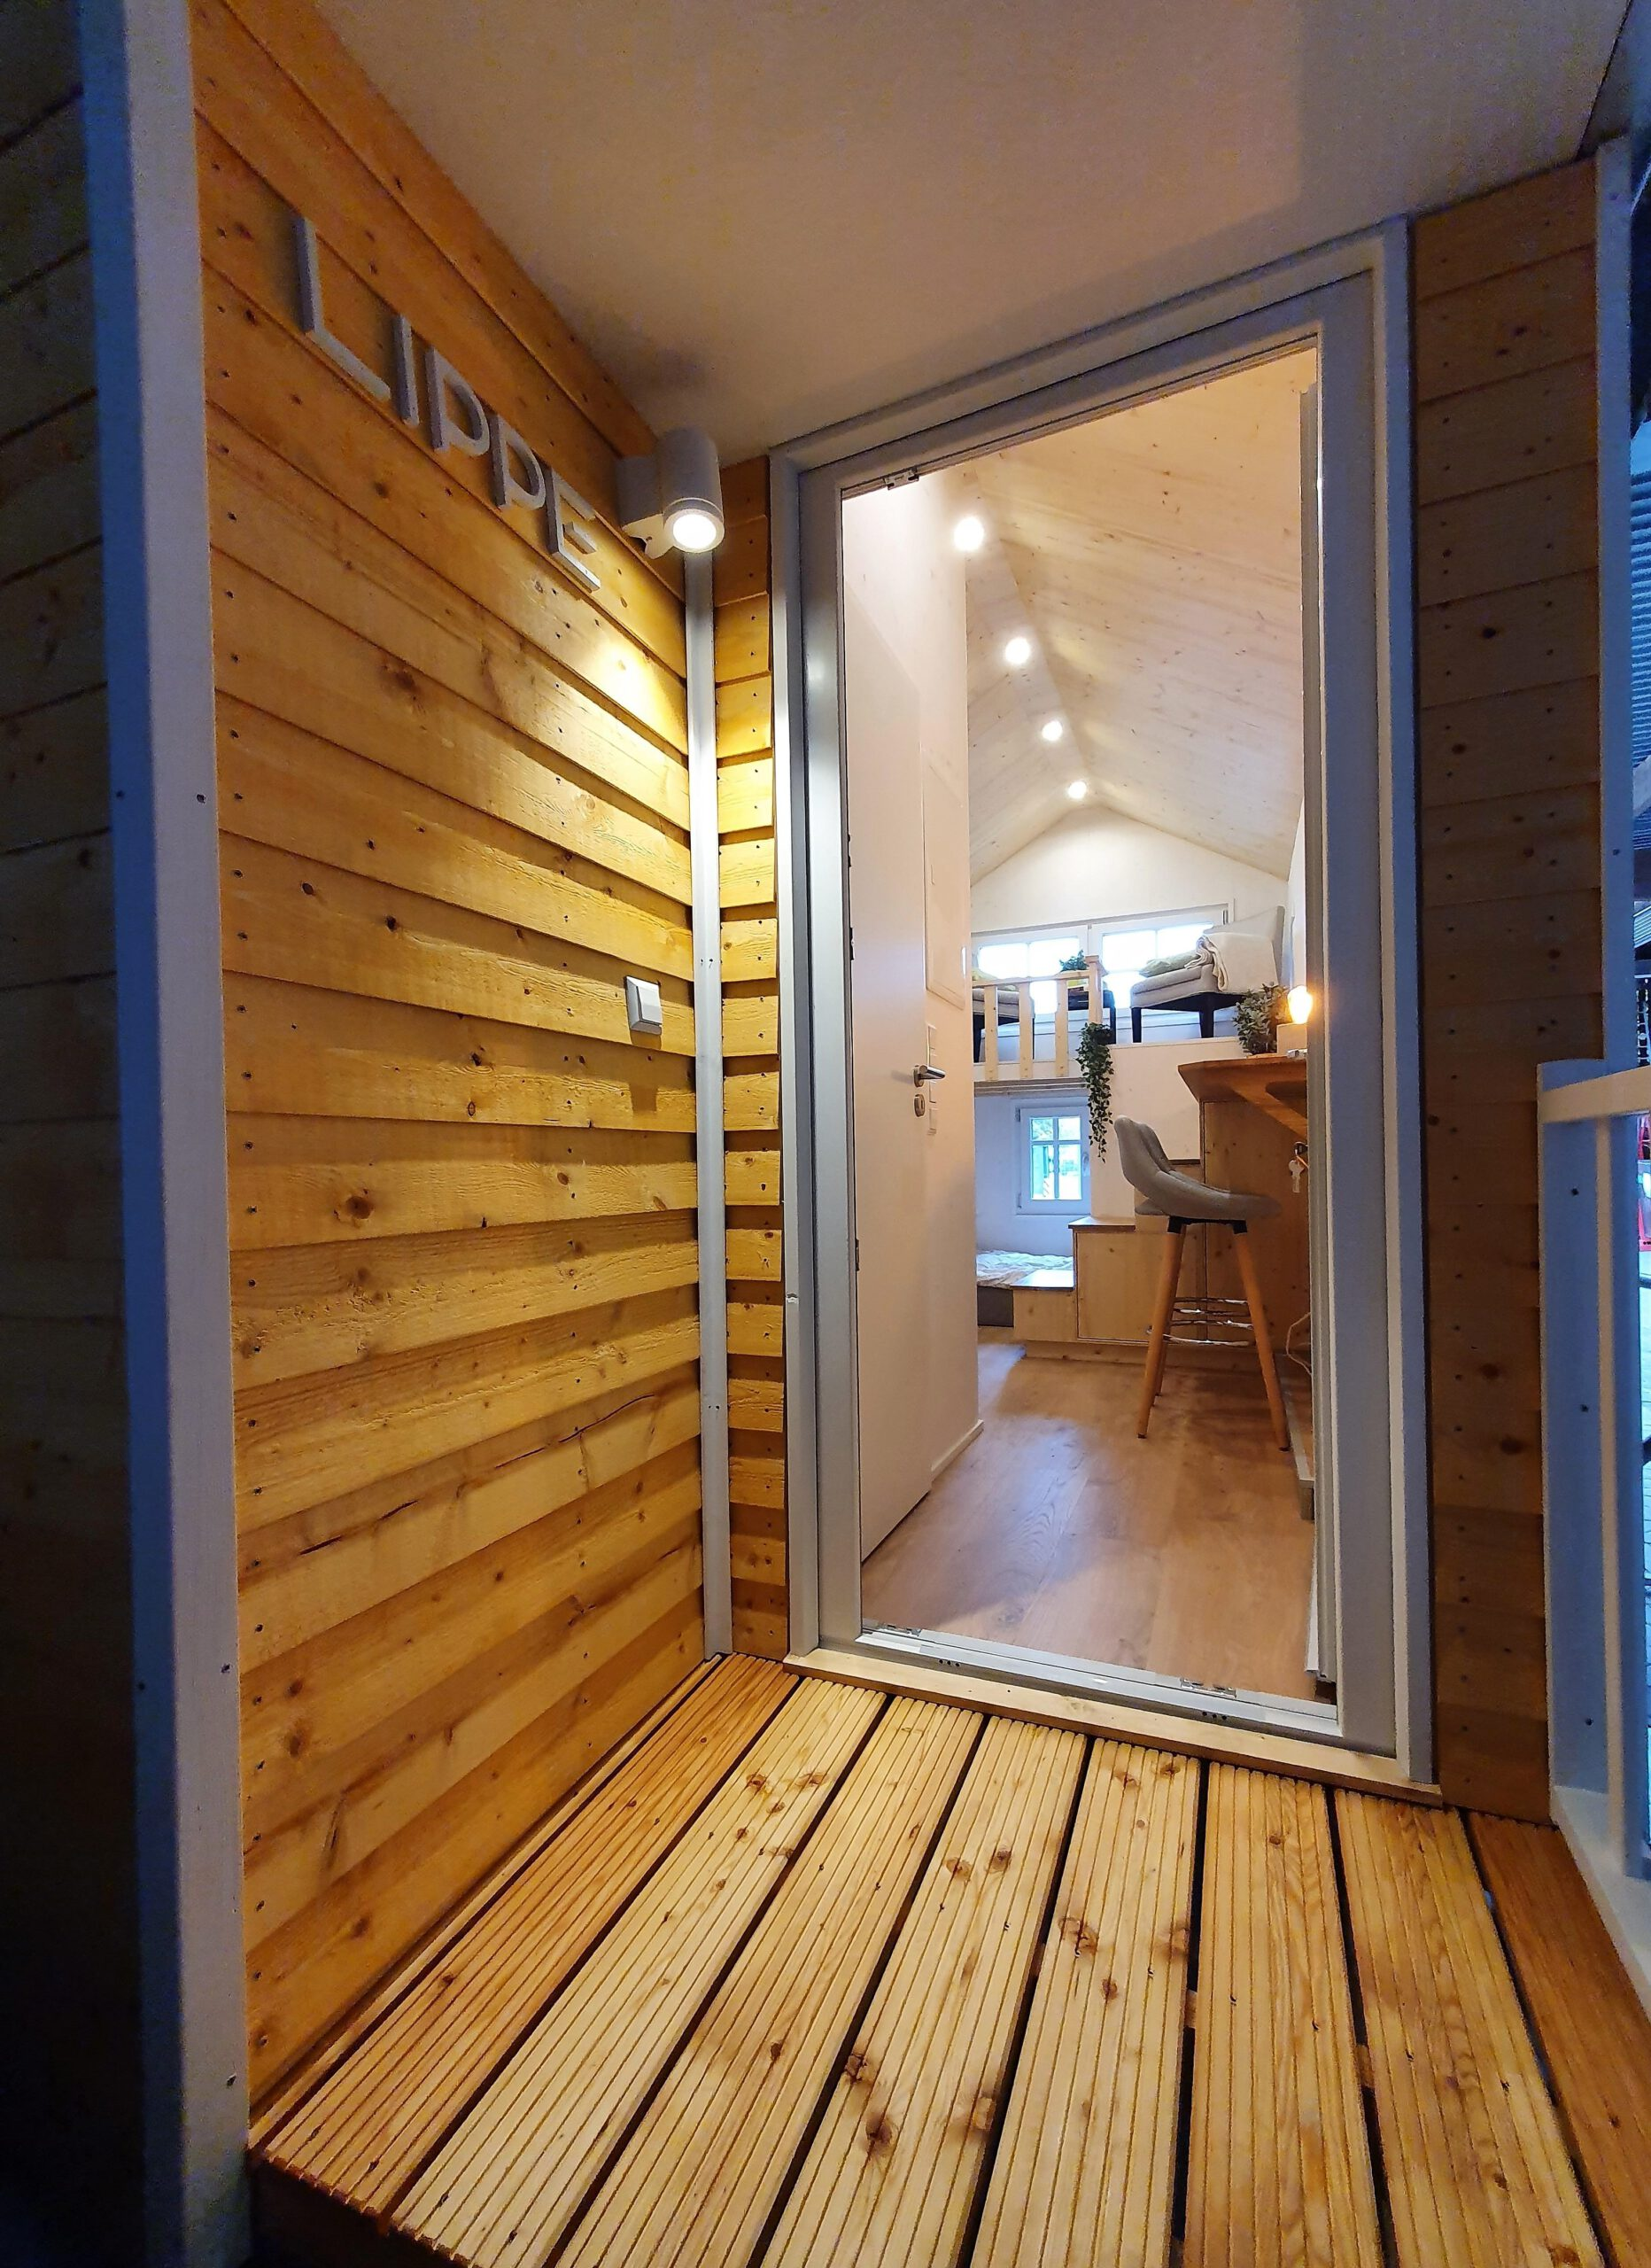 Blick durch die Haustür ins Innere des Tiny Houses Lippe